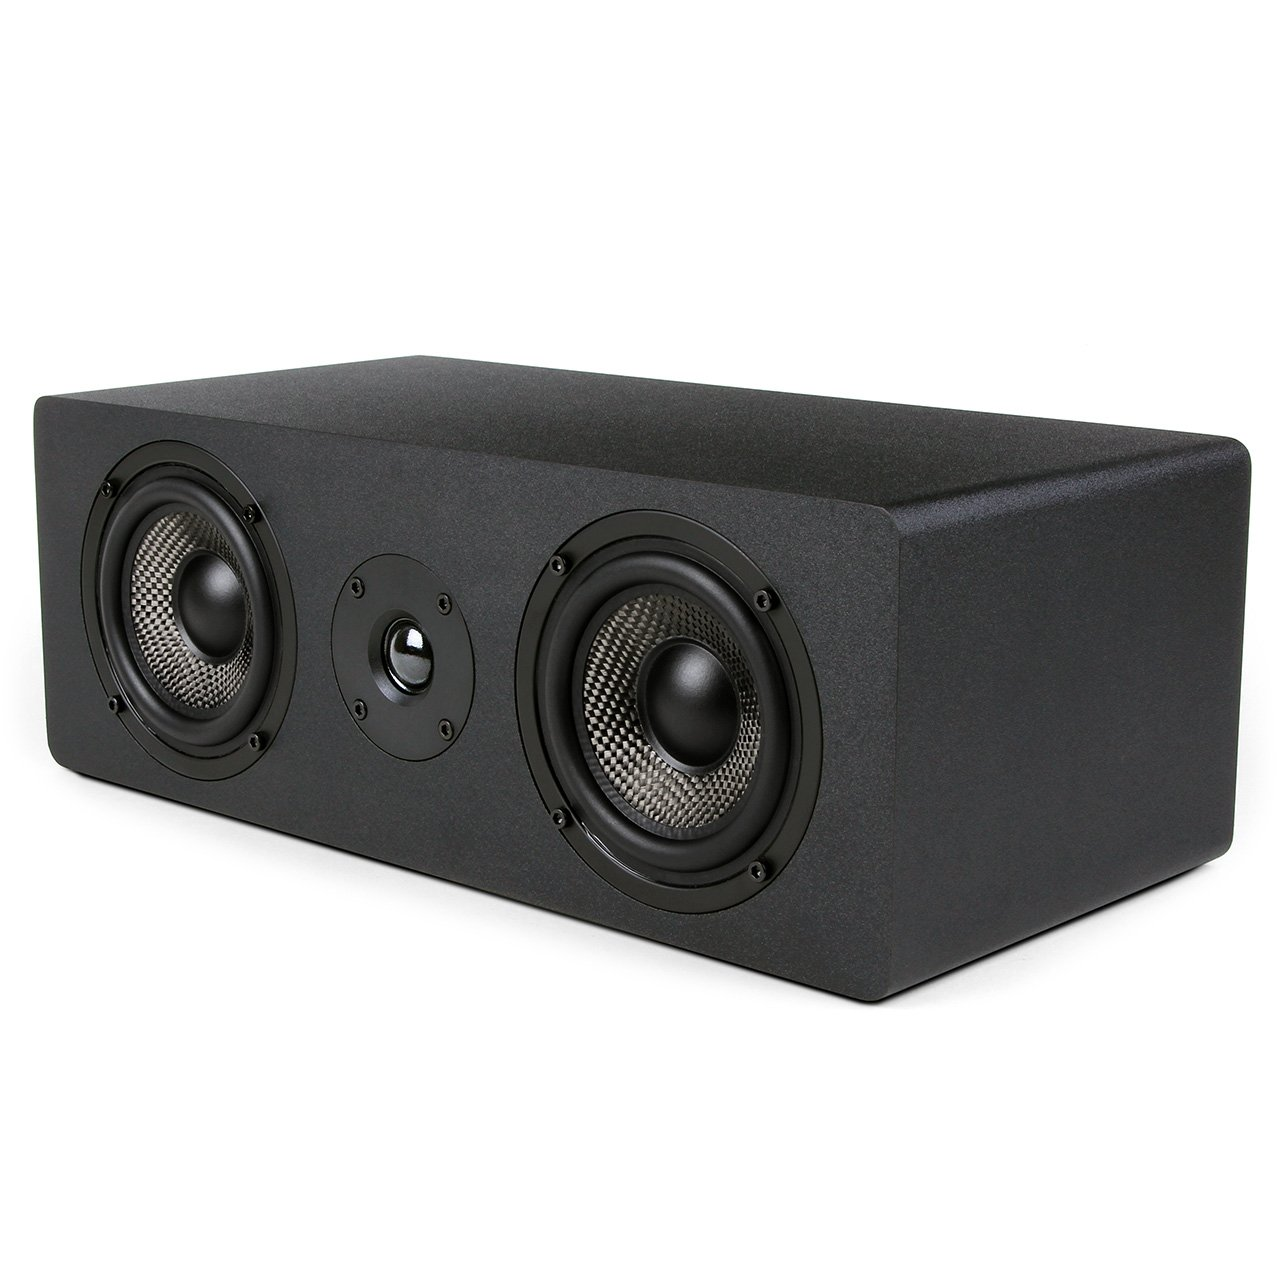 Parlante Central : Micca Mb42x-c Center Channel Speaker X 1